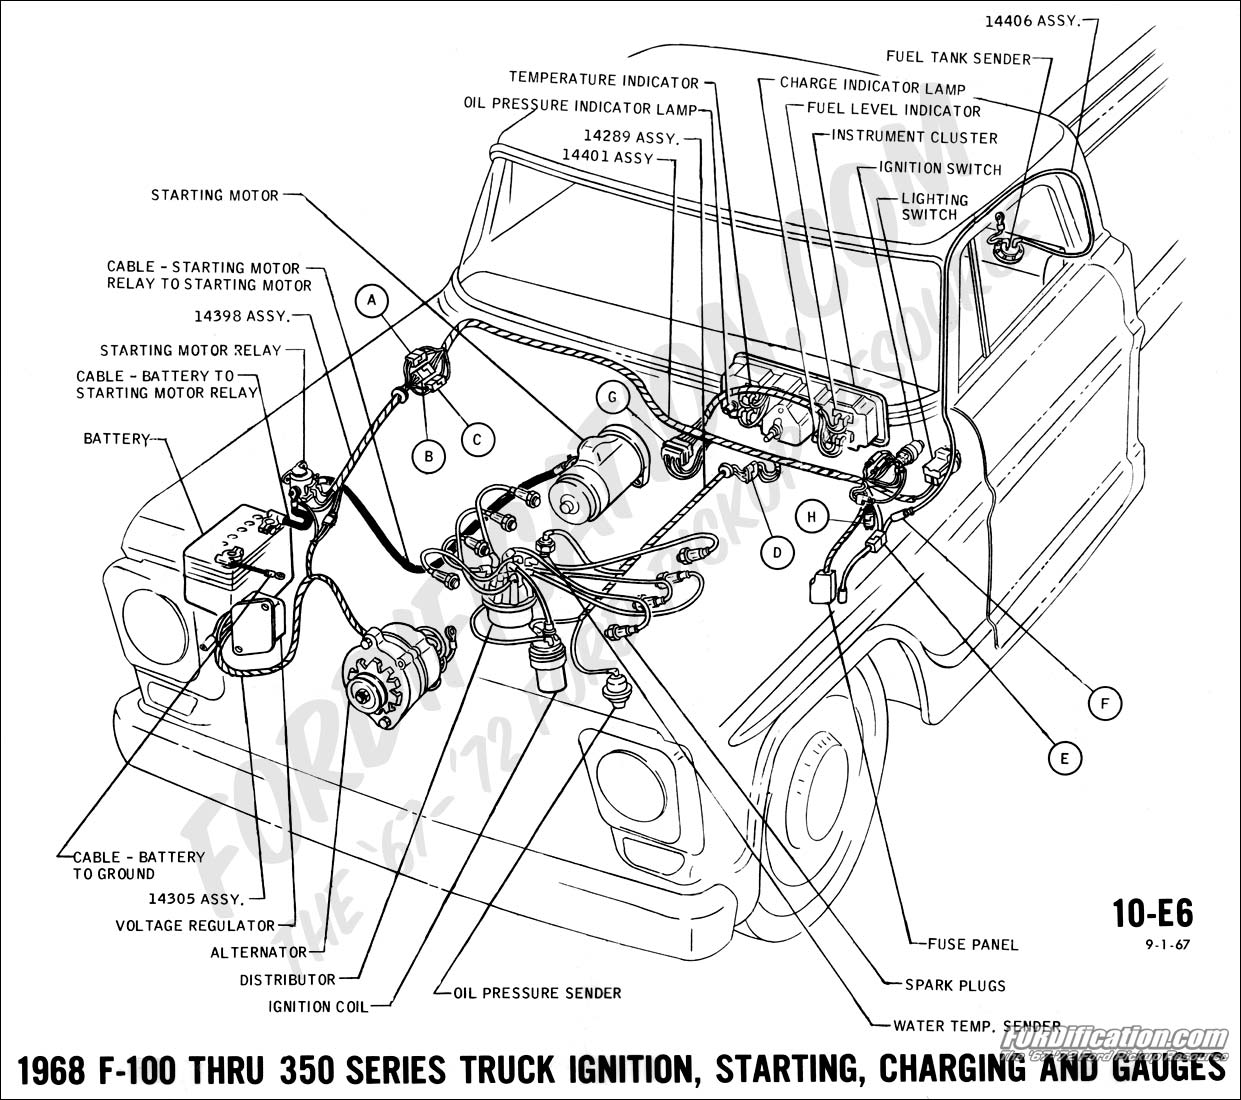 67 Ford F 250 Wiring Diagram Library 71 Mustang Regulator 1968 100 Thru 350 Ignition Starting Charging And Gauges